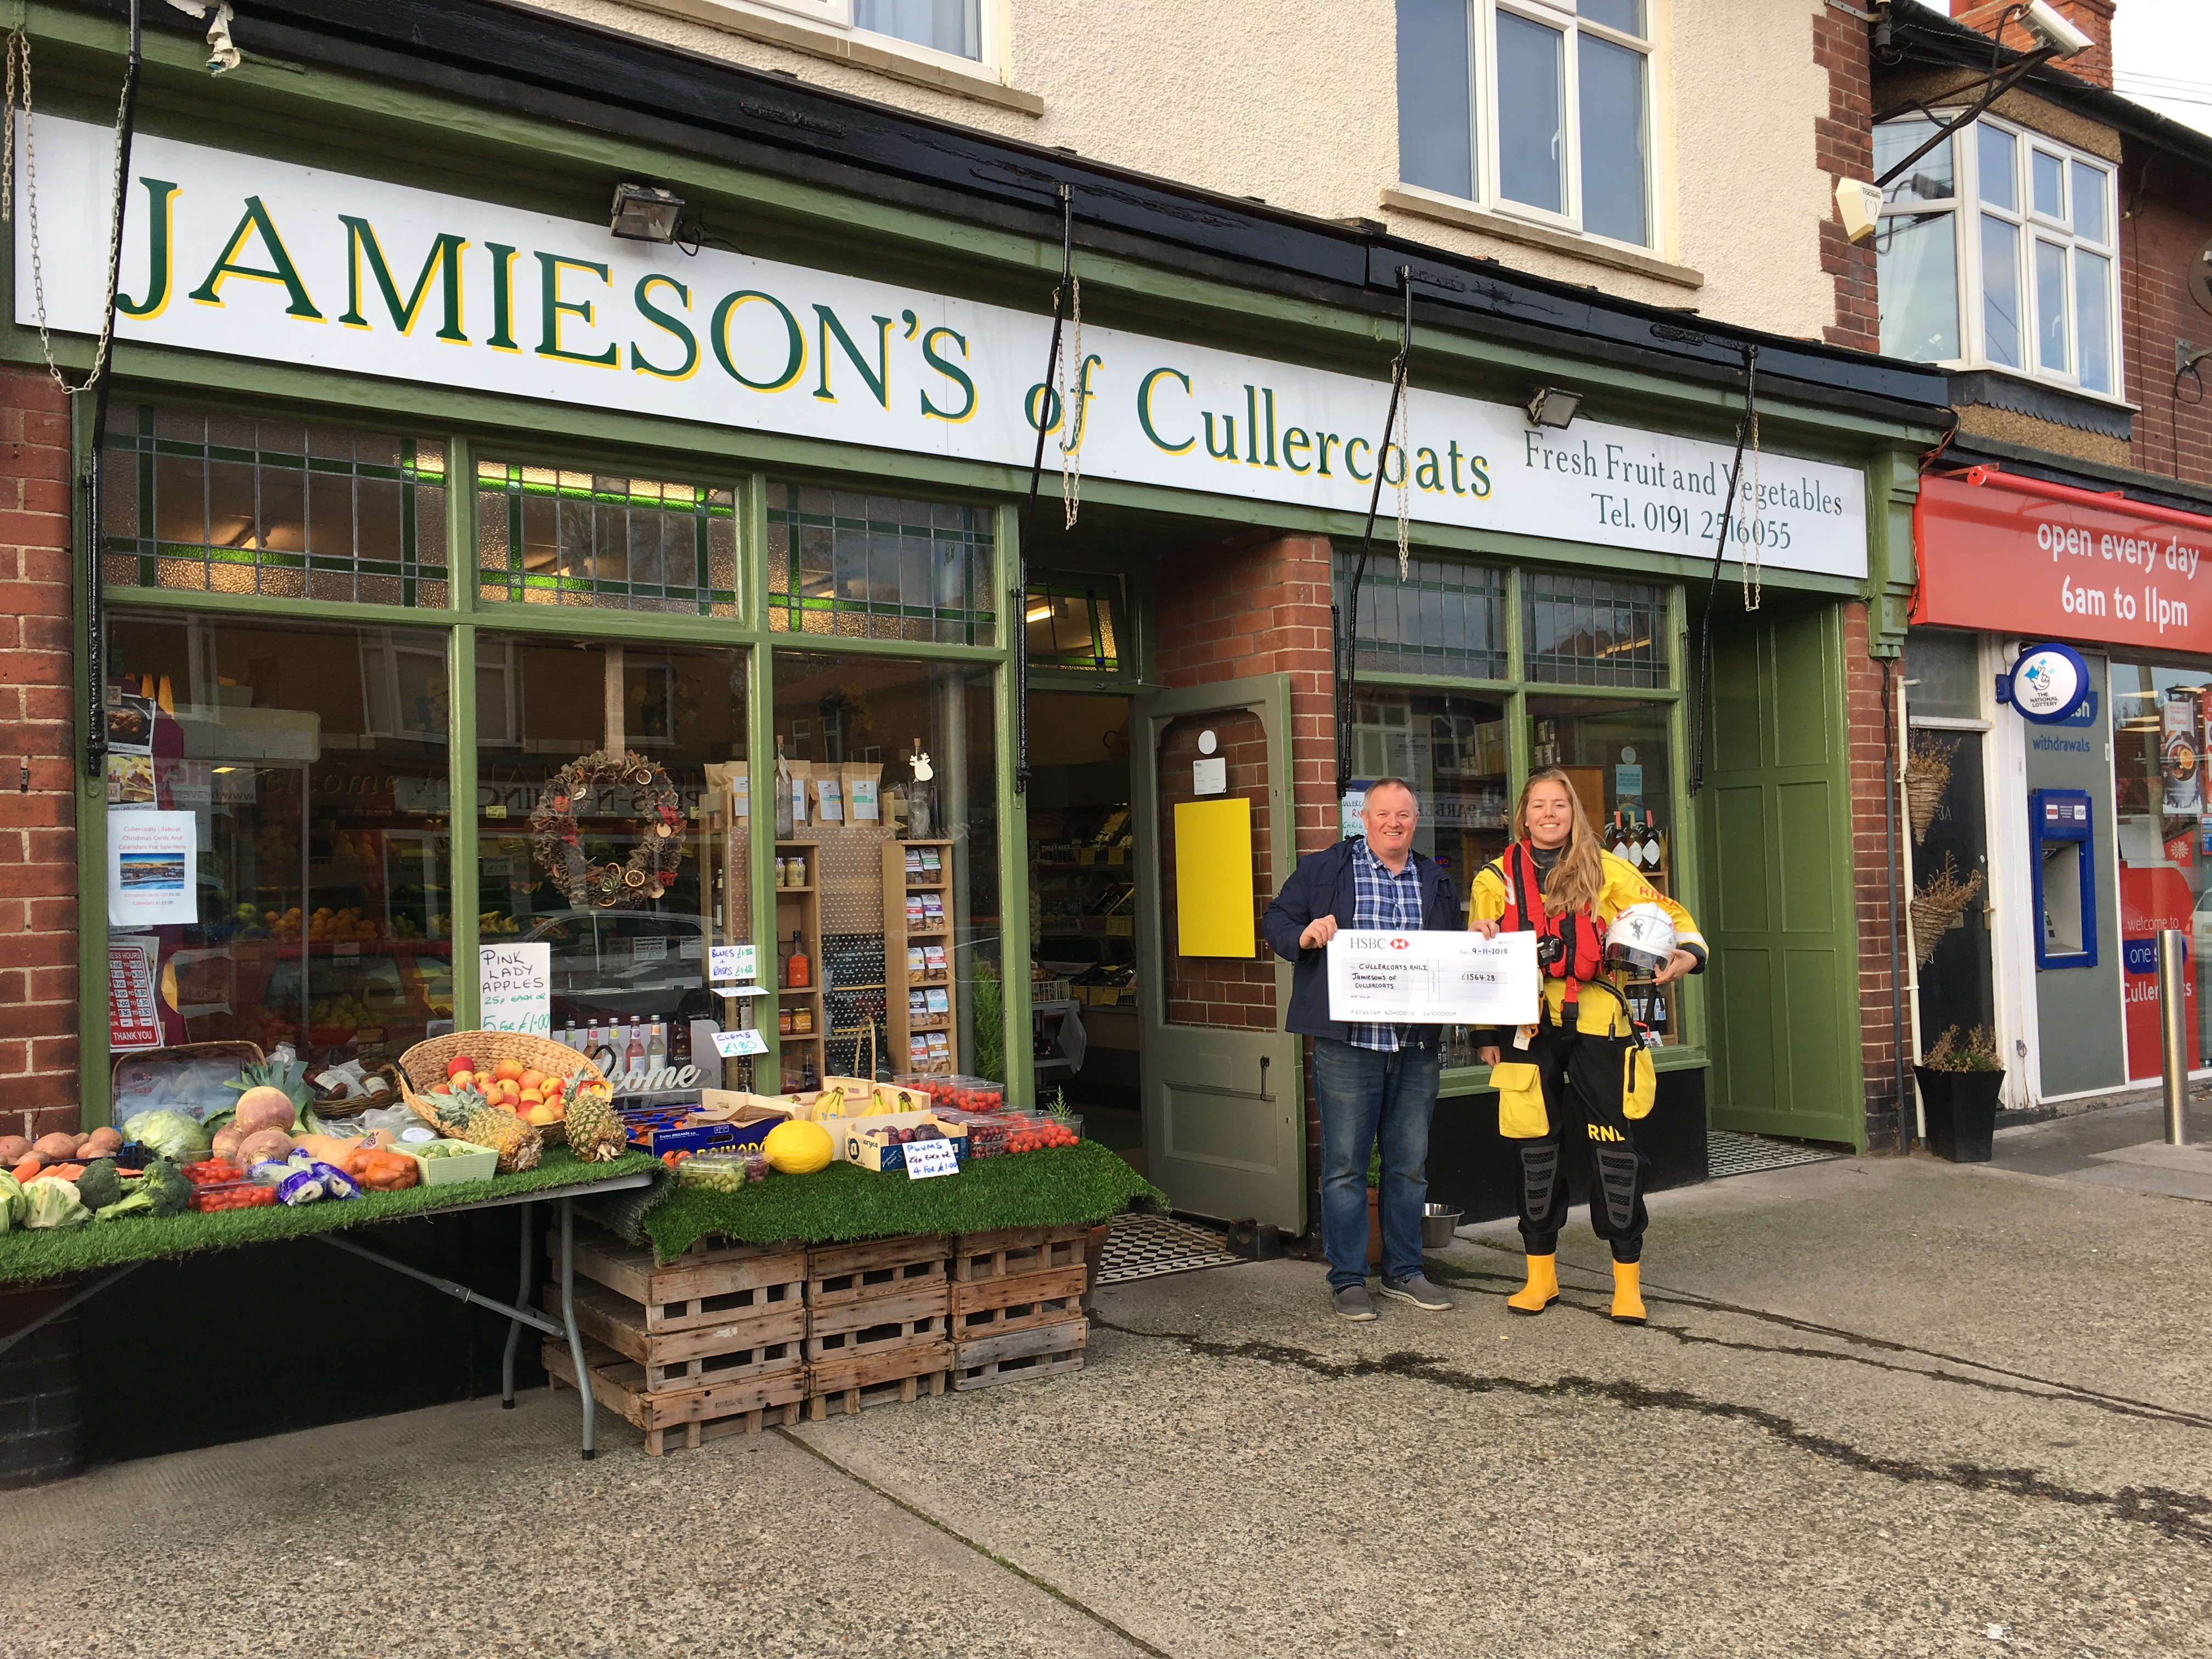 Fundraiser Dave Jamieson and Cullercoats Crew Member, Anna Heslop, stand outside Jamieson's of Cullercoats